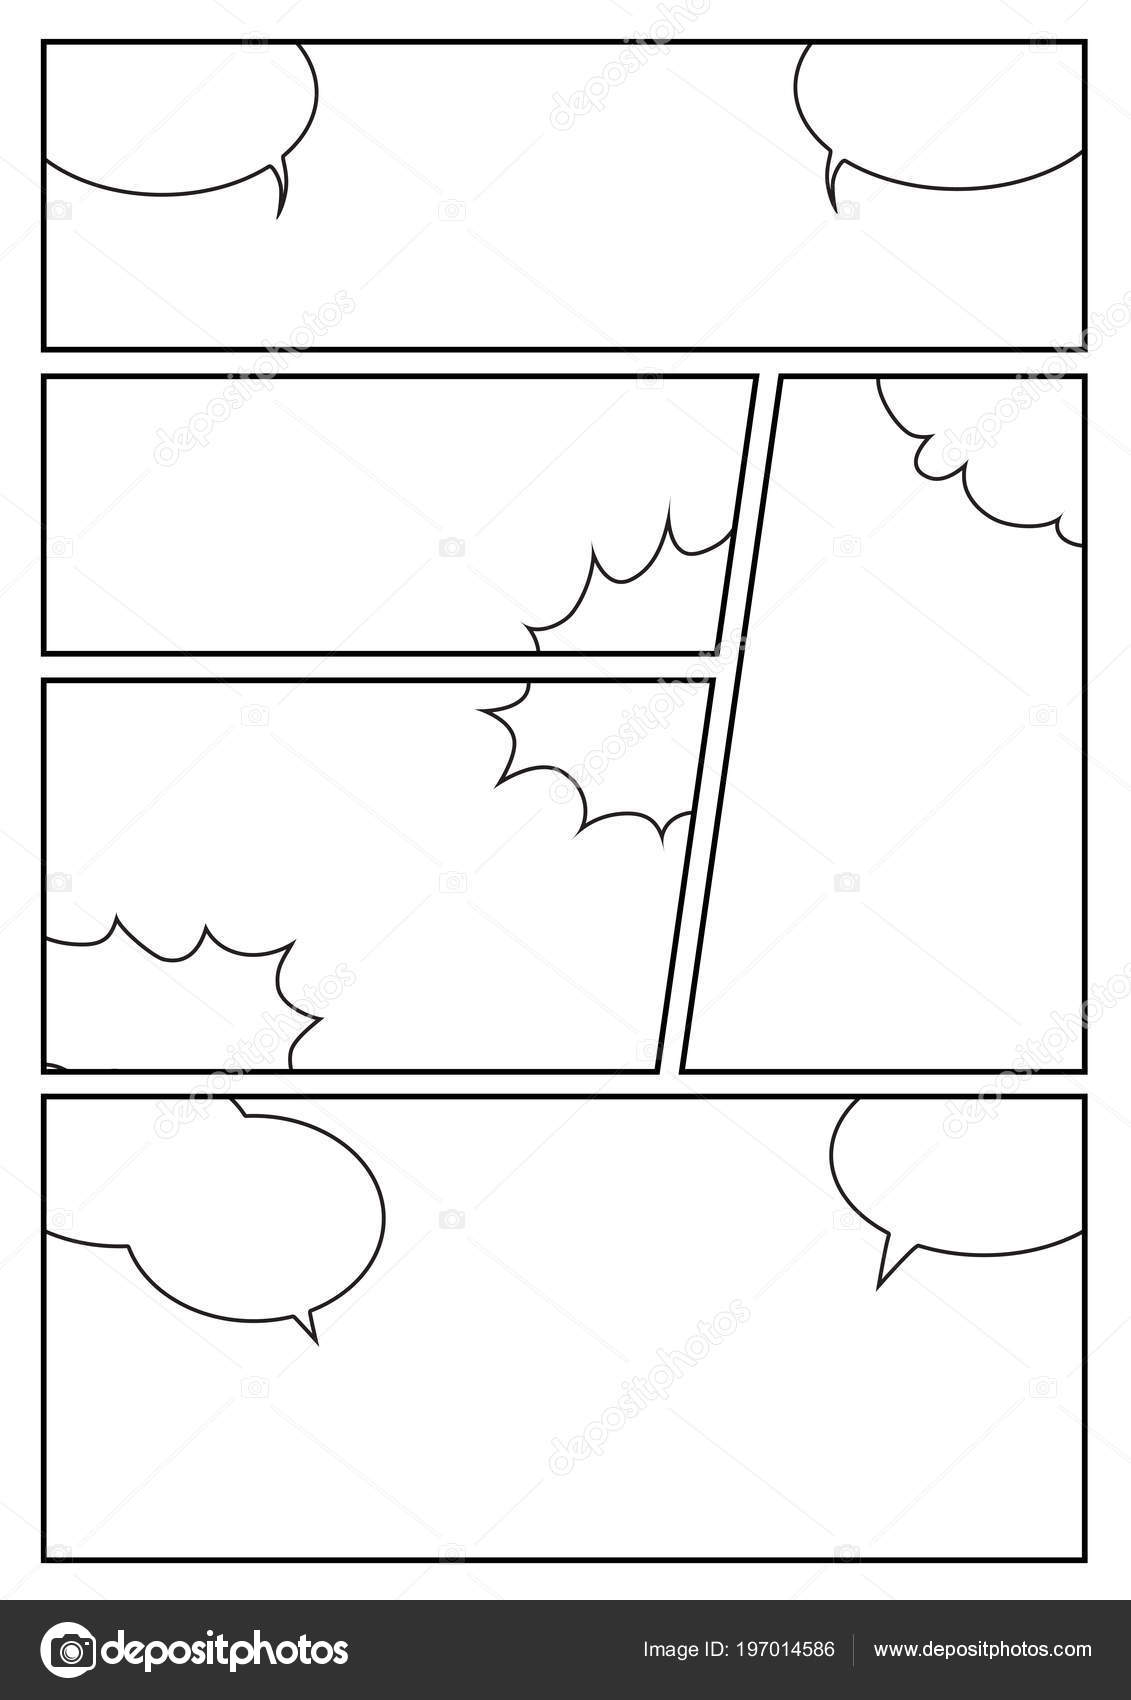 how to create a storyboard for a book